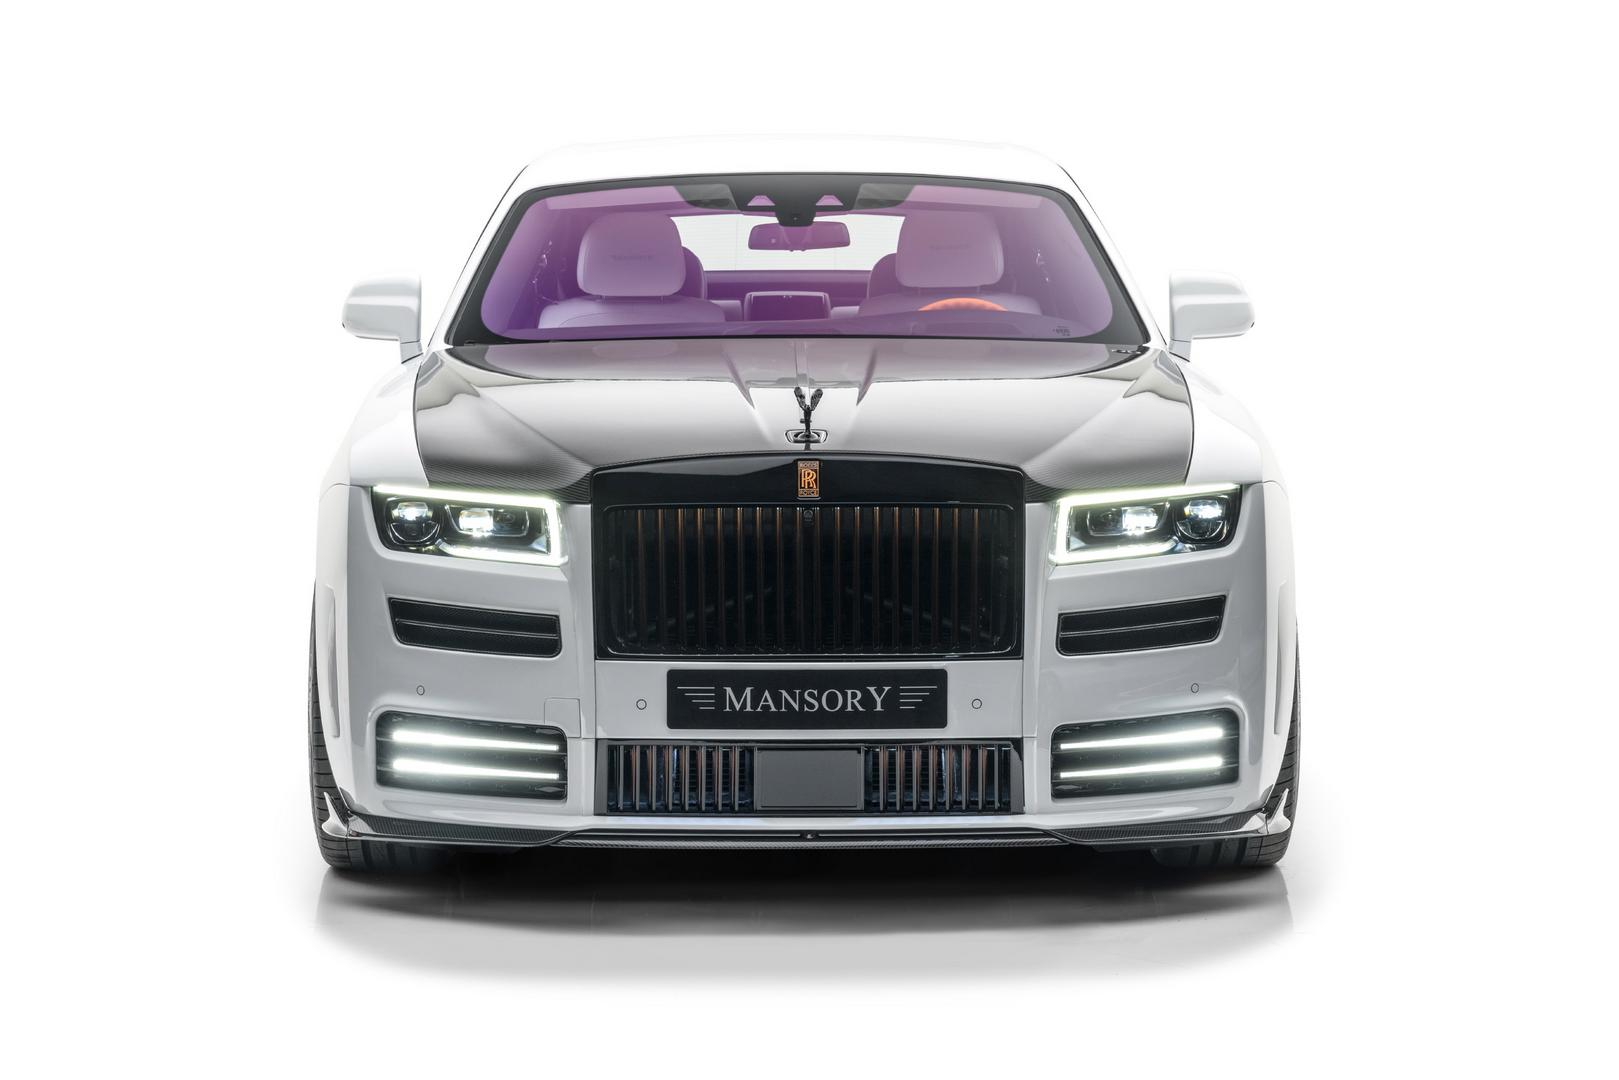 Mansory RR Ghost front